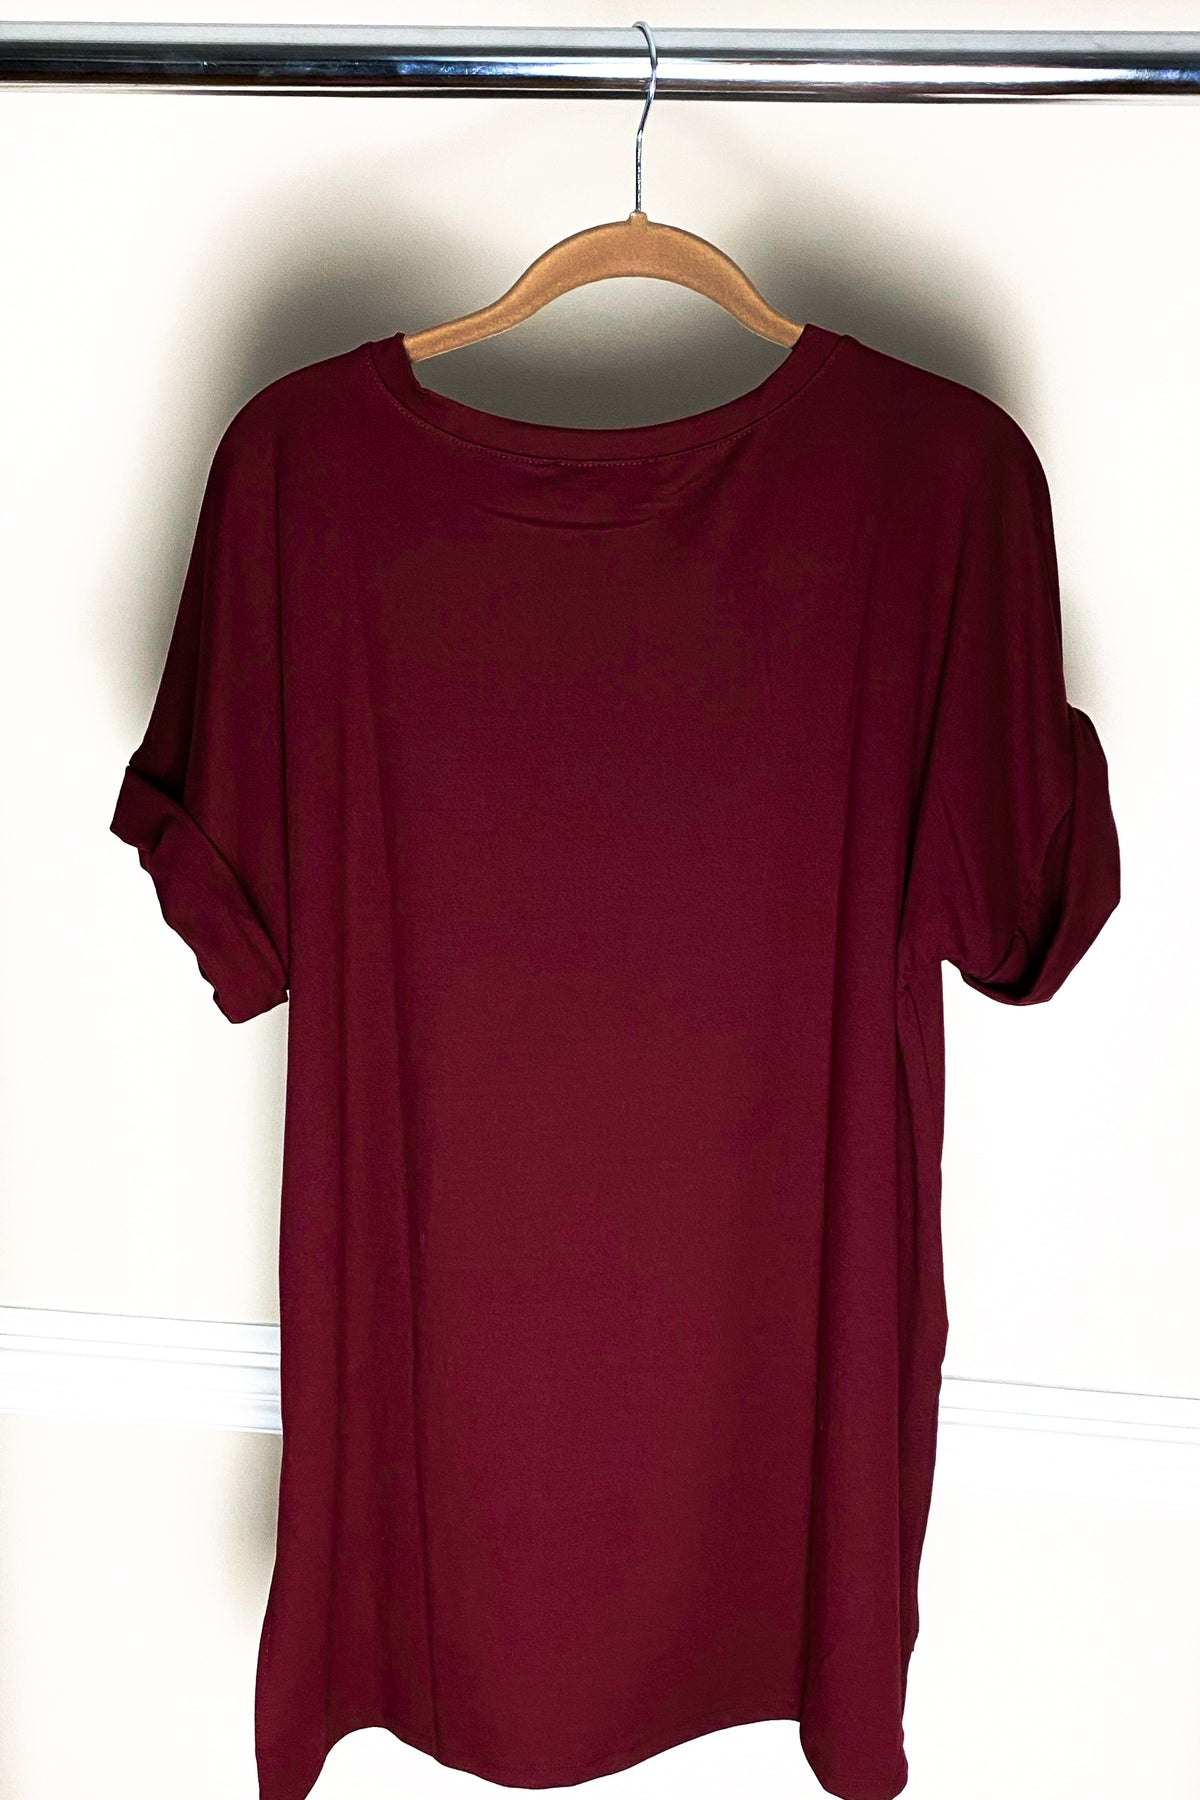 'Roll With It' Deep Wine Rolled Sleeve Boyfriend V-Neck Tee